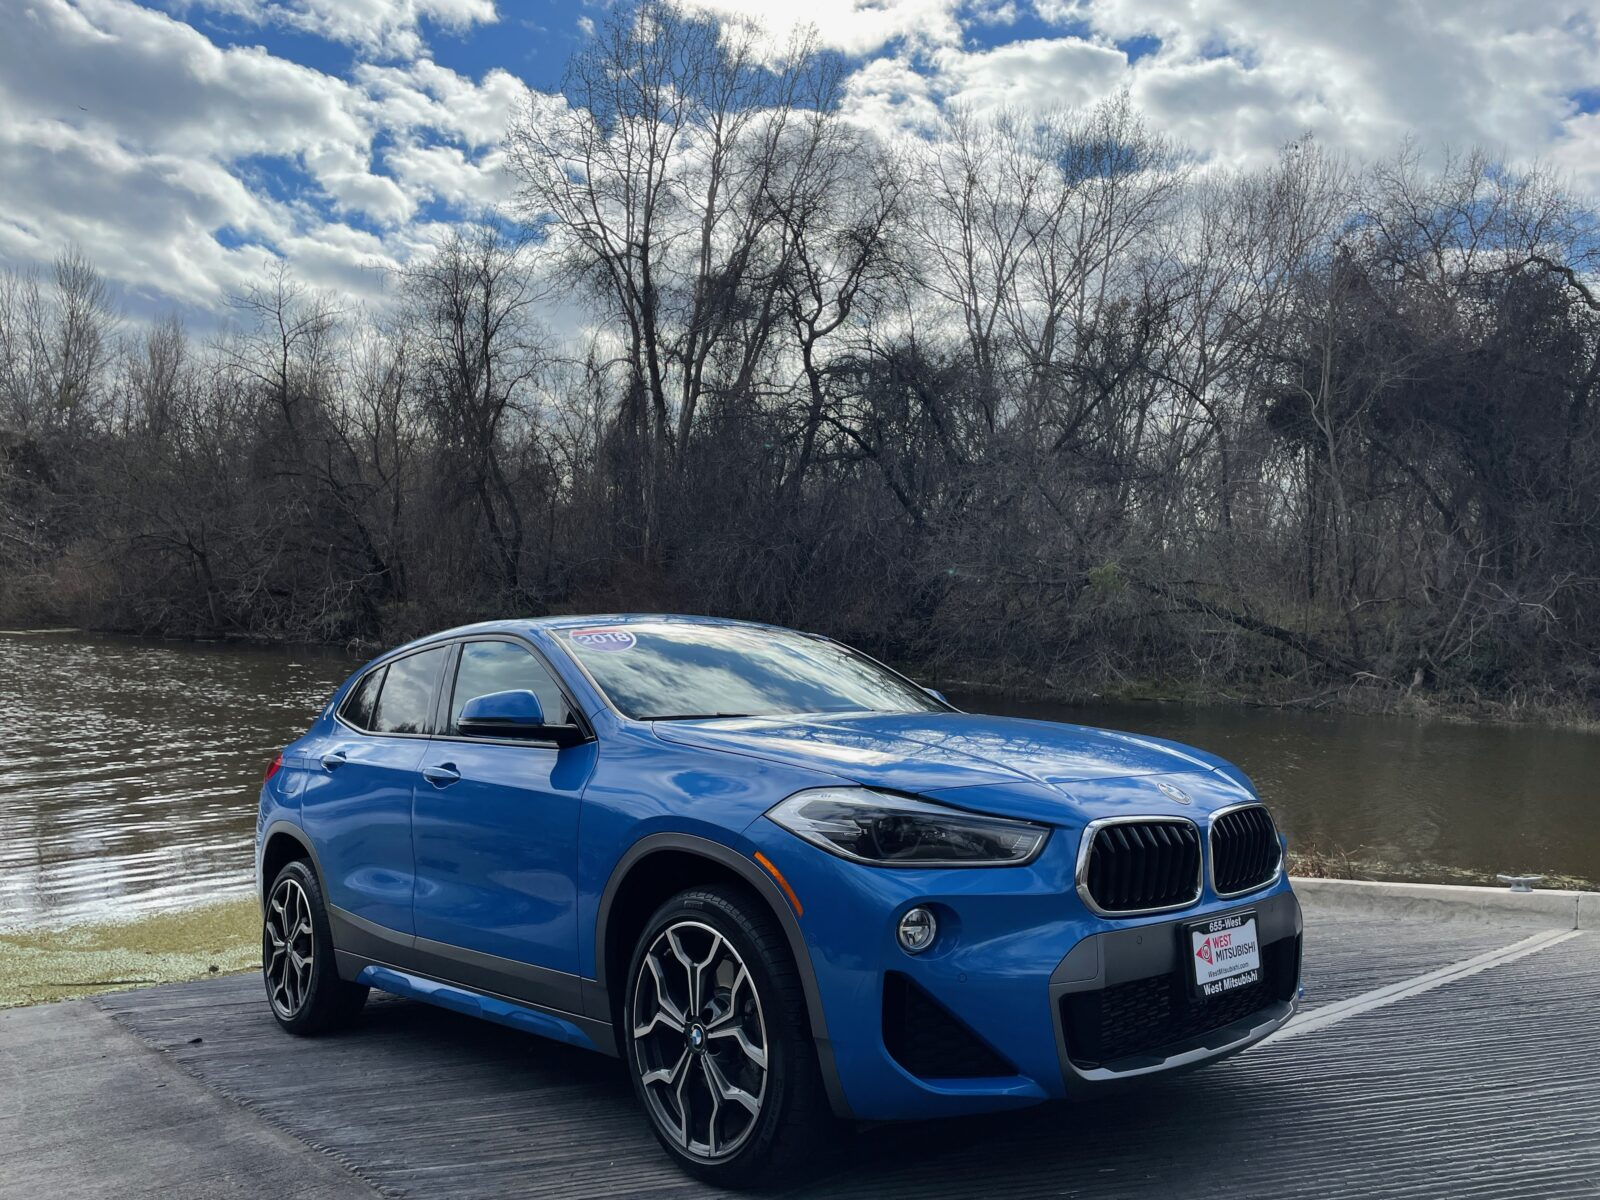 This Gorgeous 2018 BMW X2 xDrive28i is for Sale in Chico and Redding from WestMitsubishi.com